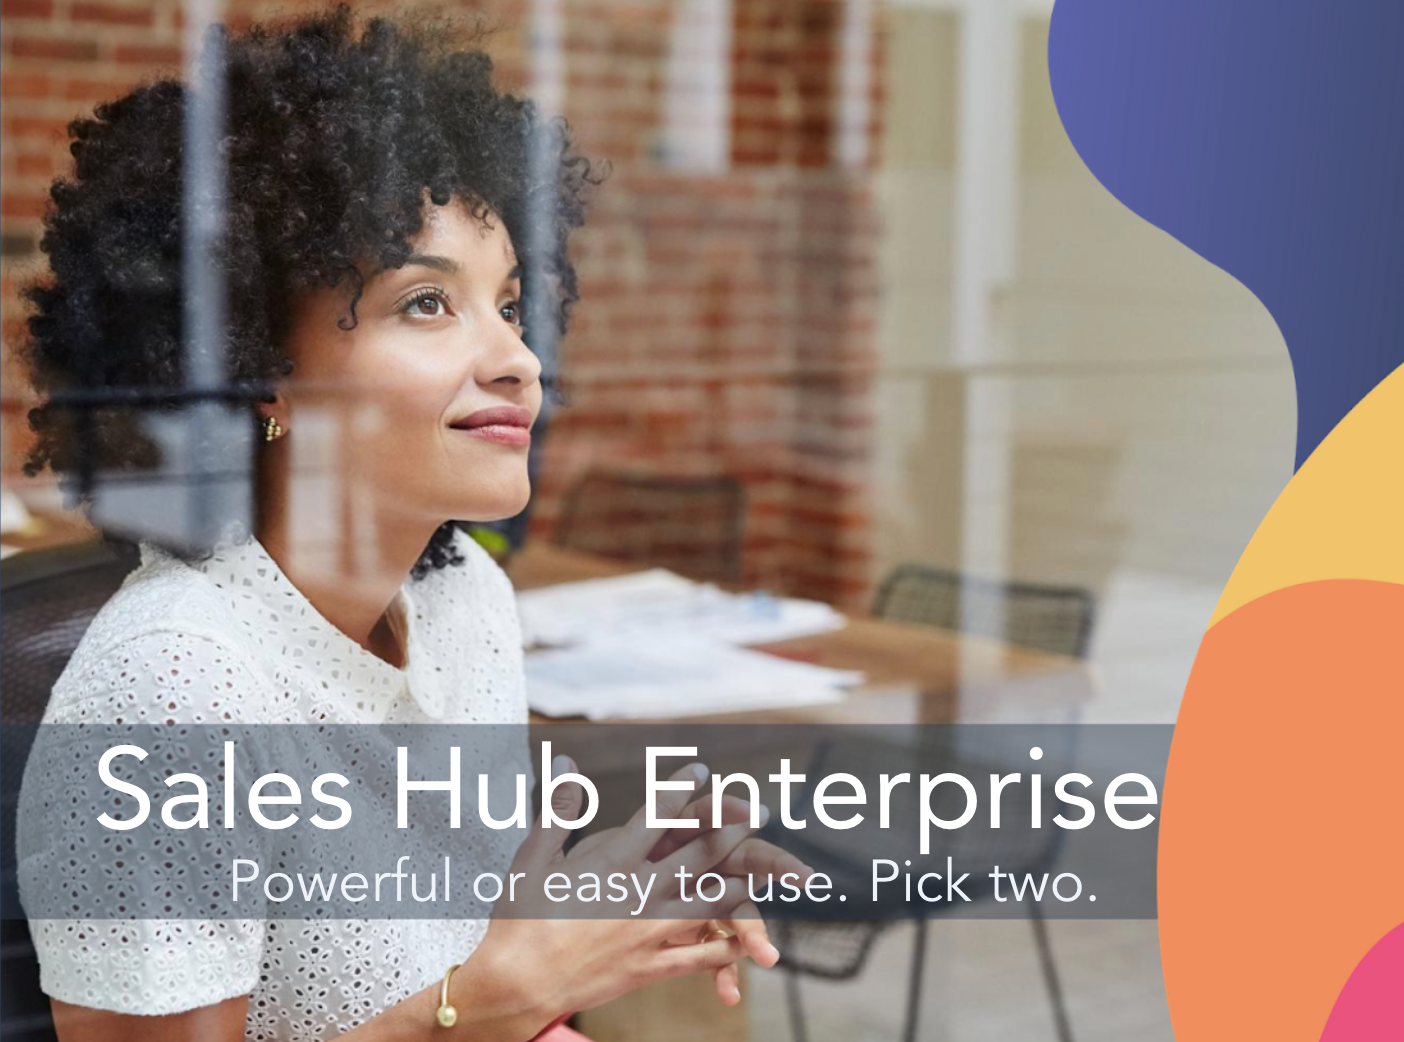 Introducing The New Sales Hub Enterprise